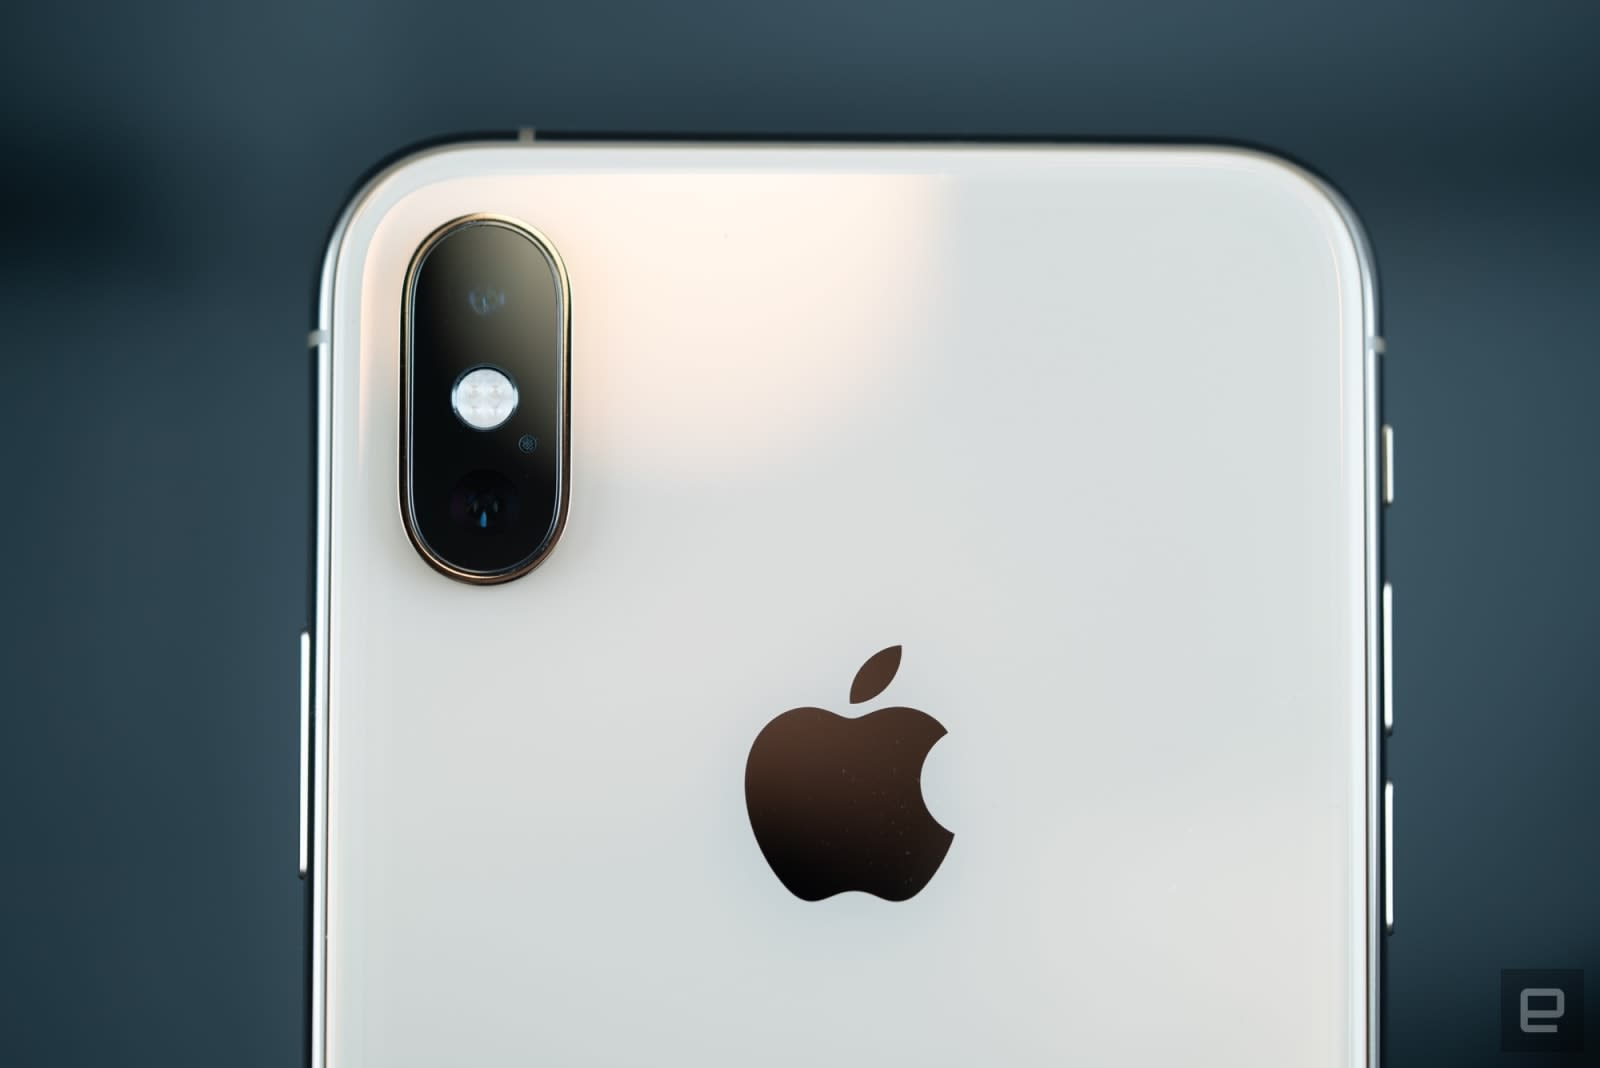 ede28fe9392 Apple's 2020 iPhones may use laser-assisted 3D cameras